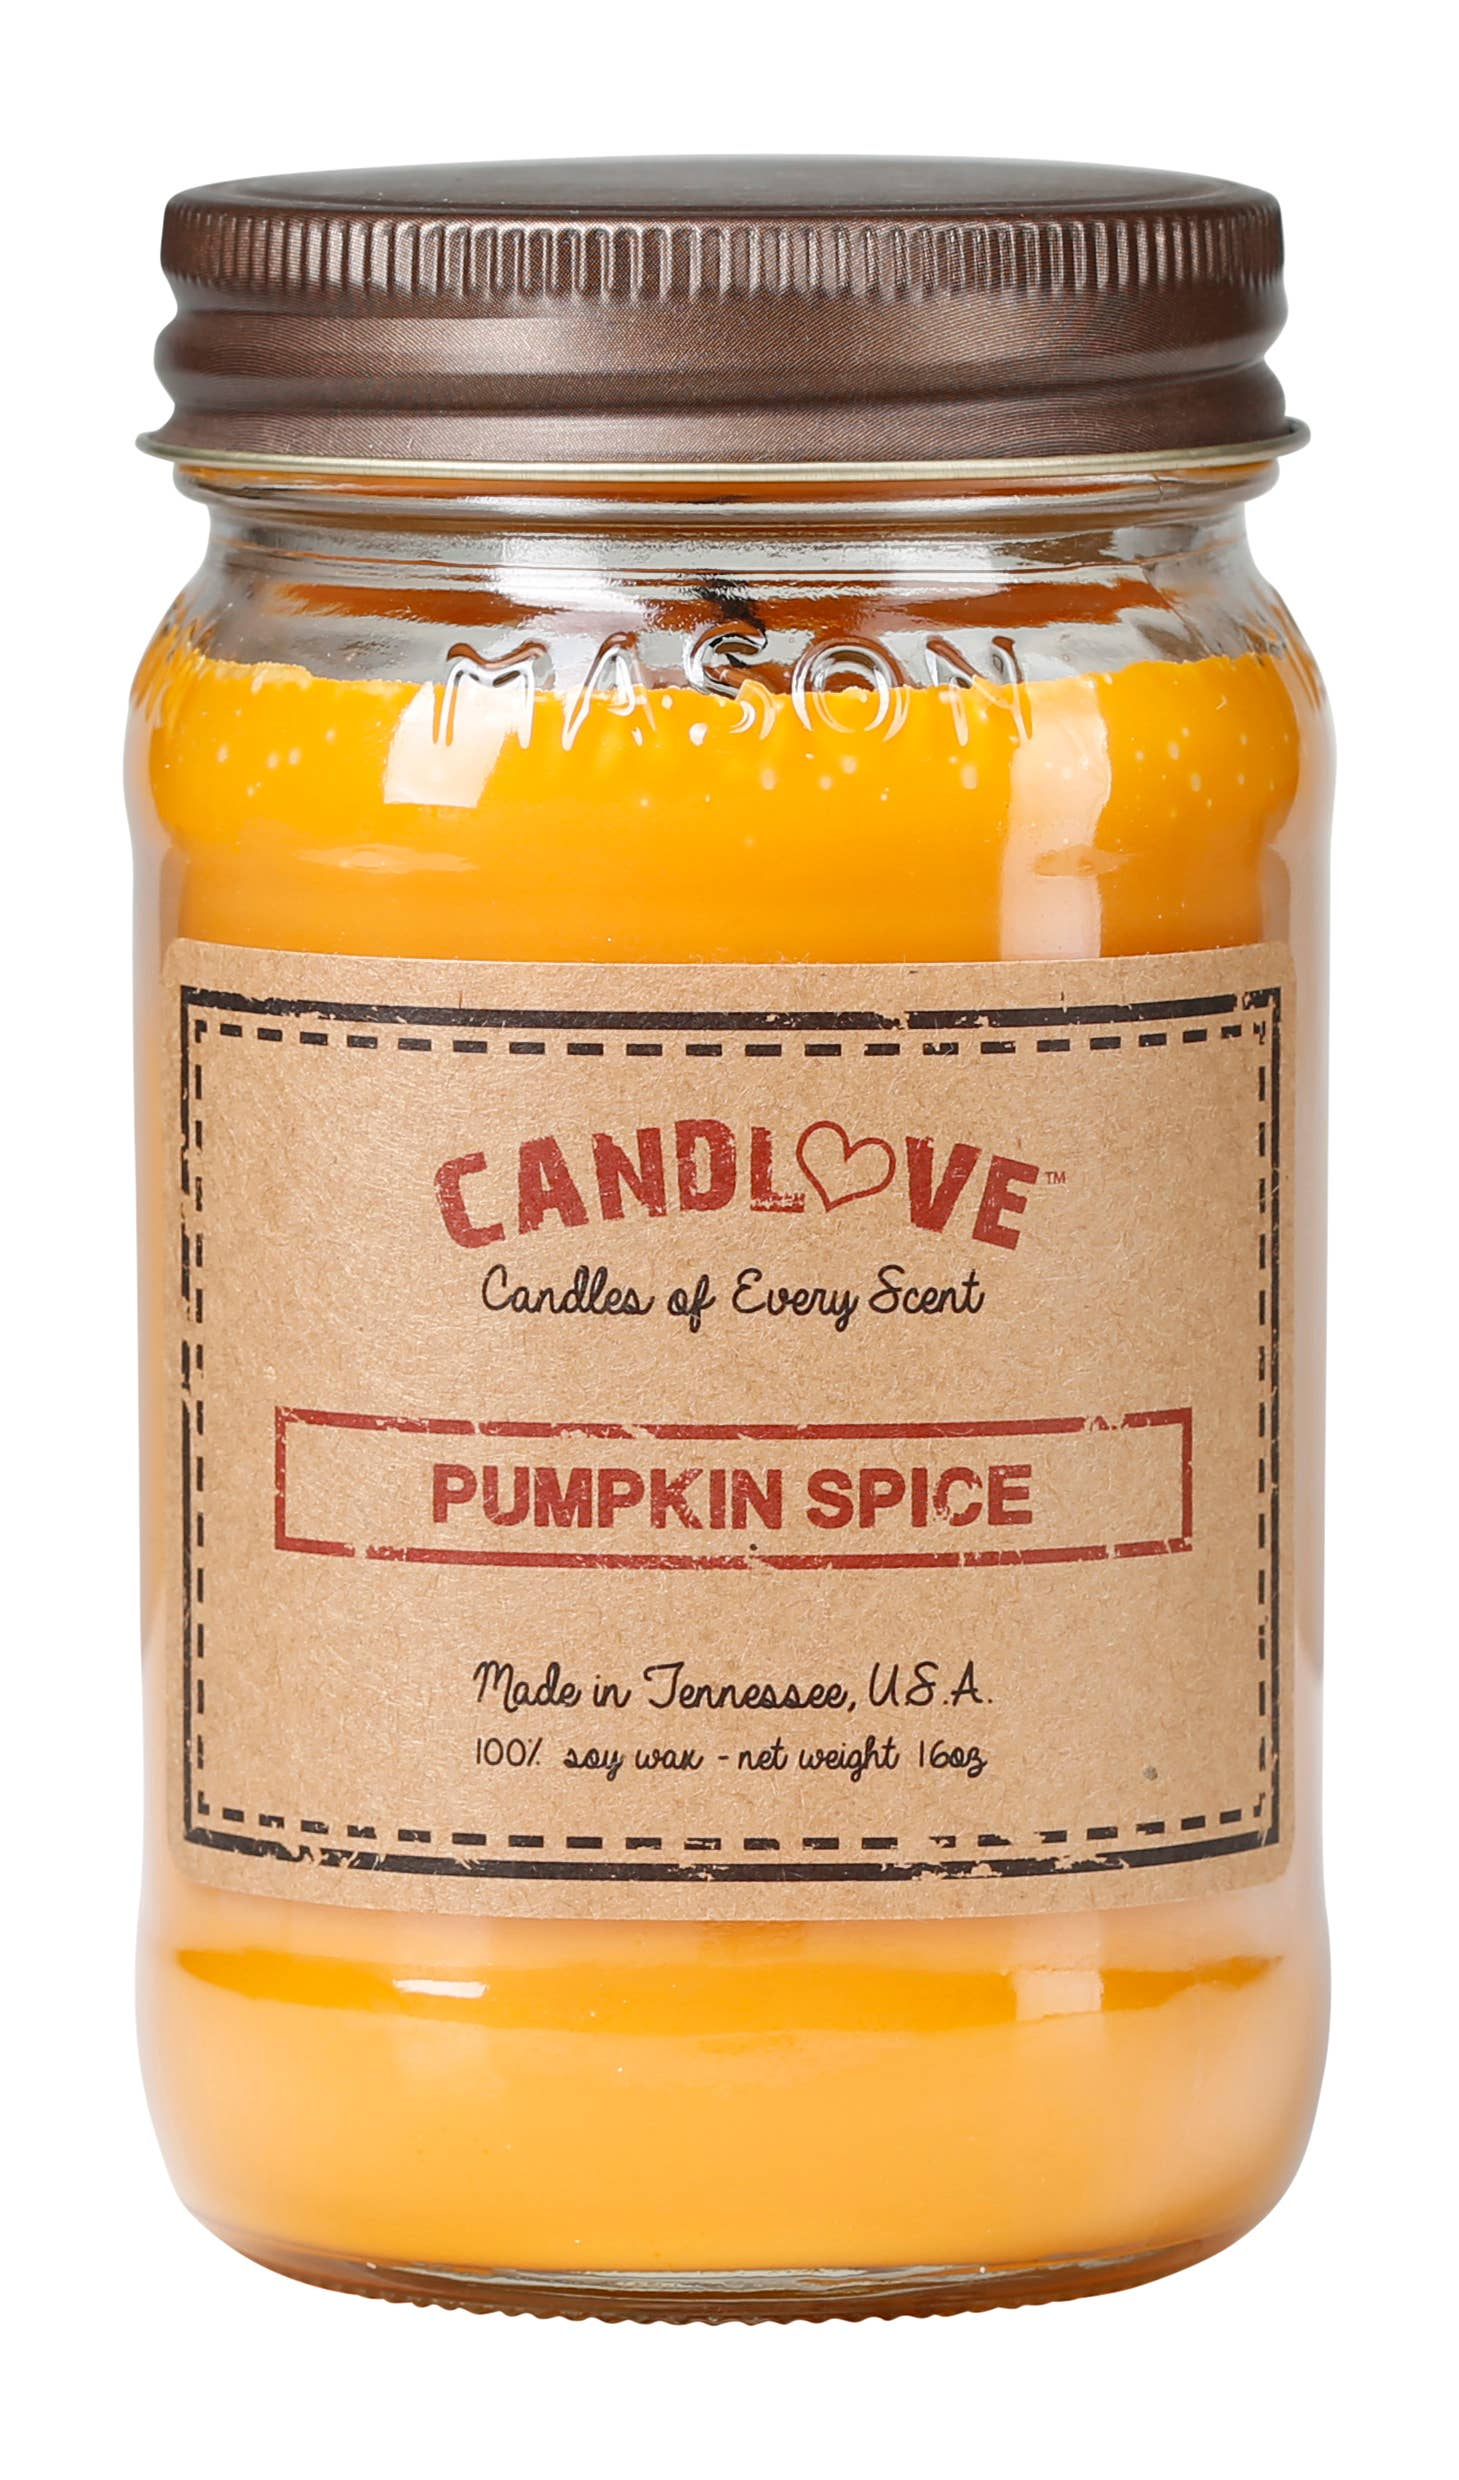 Soy Wax Scented Candle - Pumpkin Spice